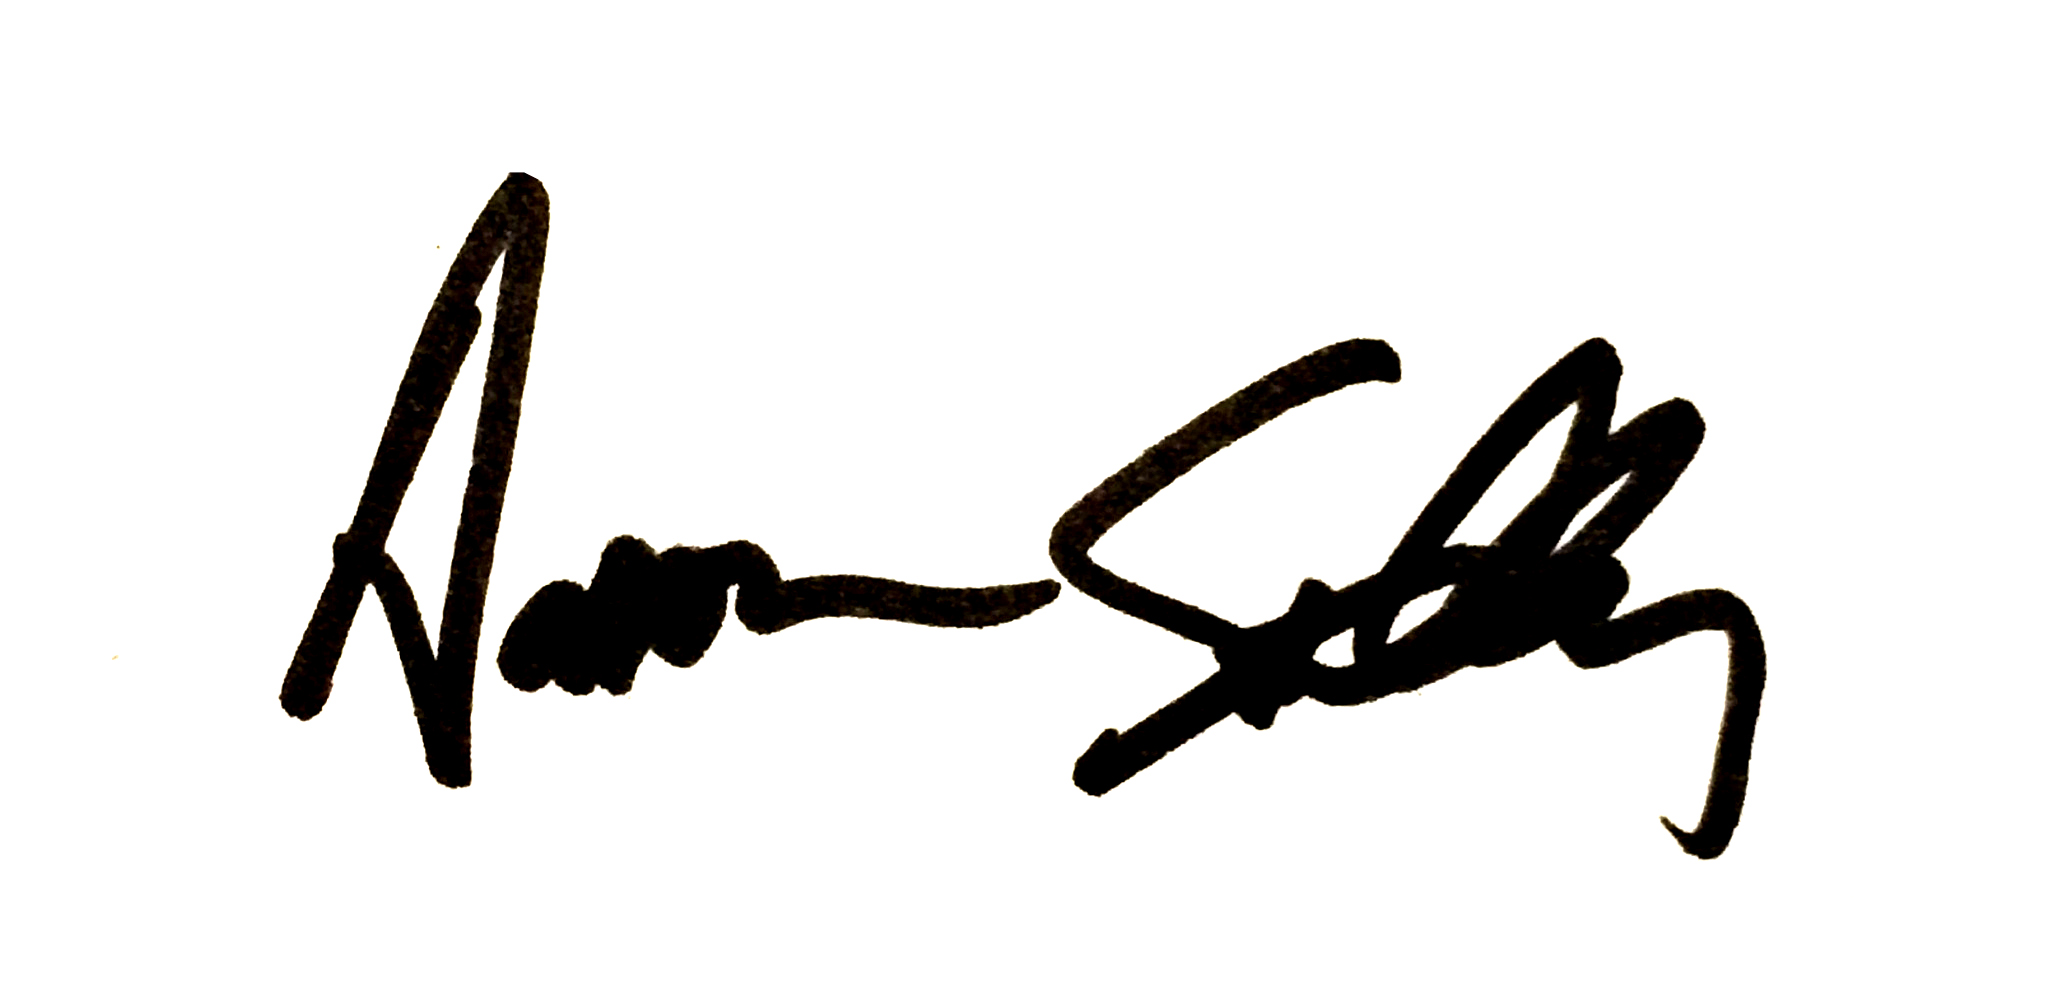 Aaron Stilley's Signature